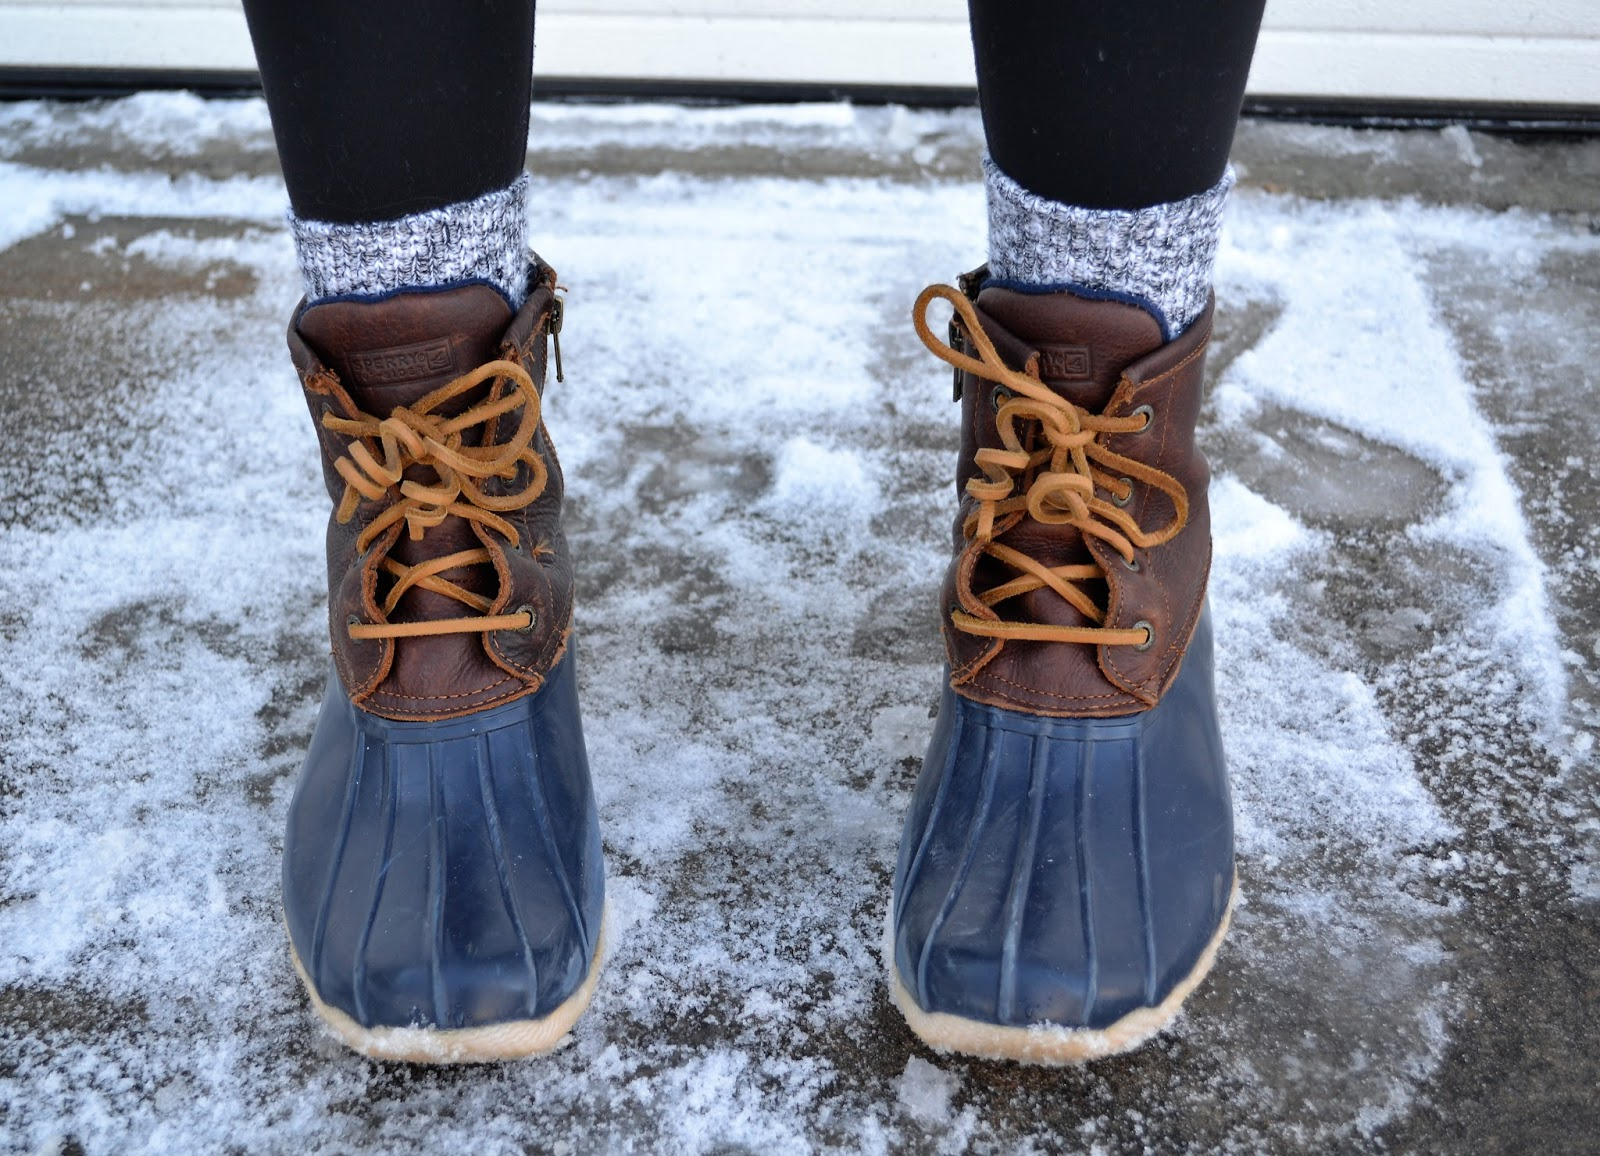 Classy Amp Clever Ll Bean Boots V Sperry Duckboots